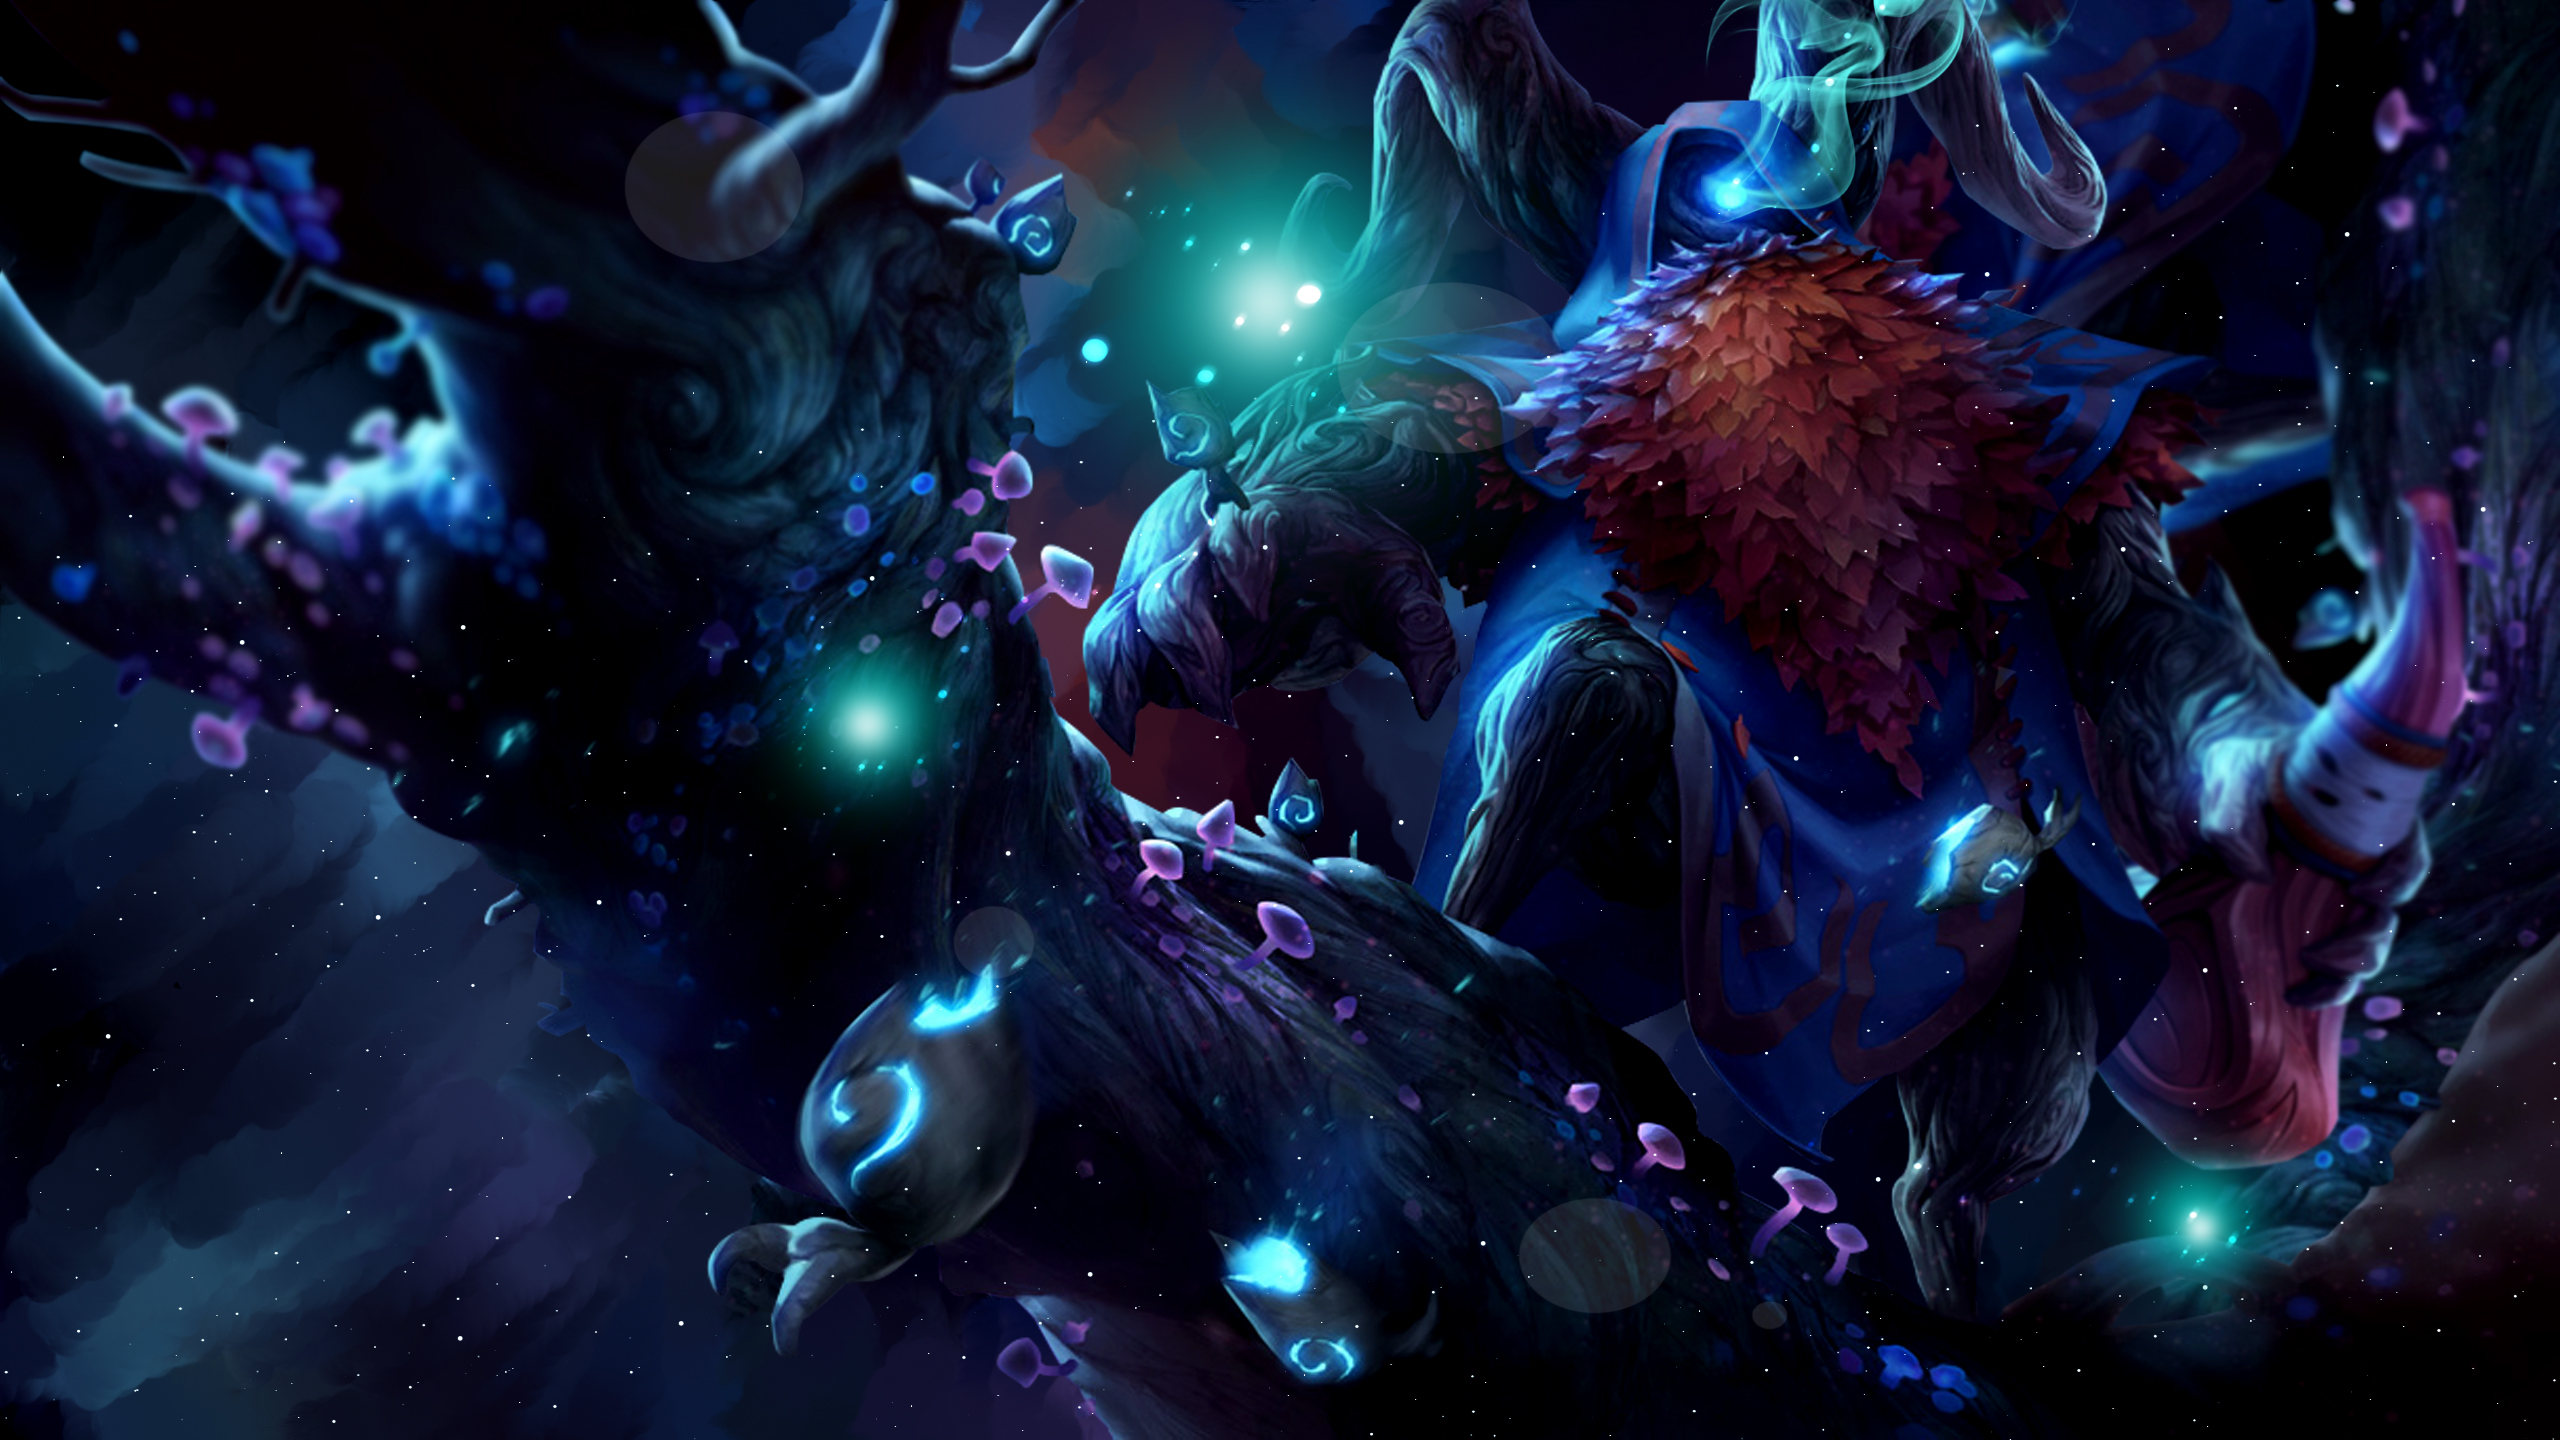 DeviantArt: More Like League of Legends - Bard Wallpaper by Soinnes